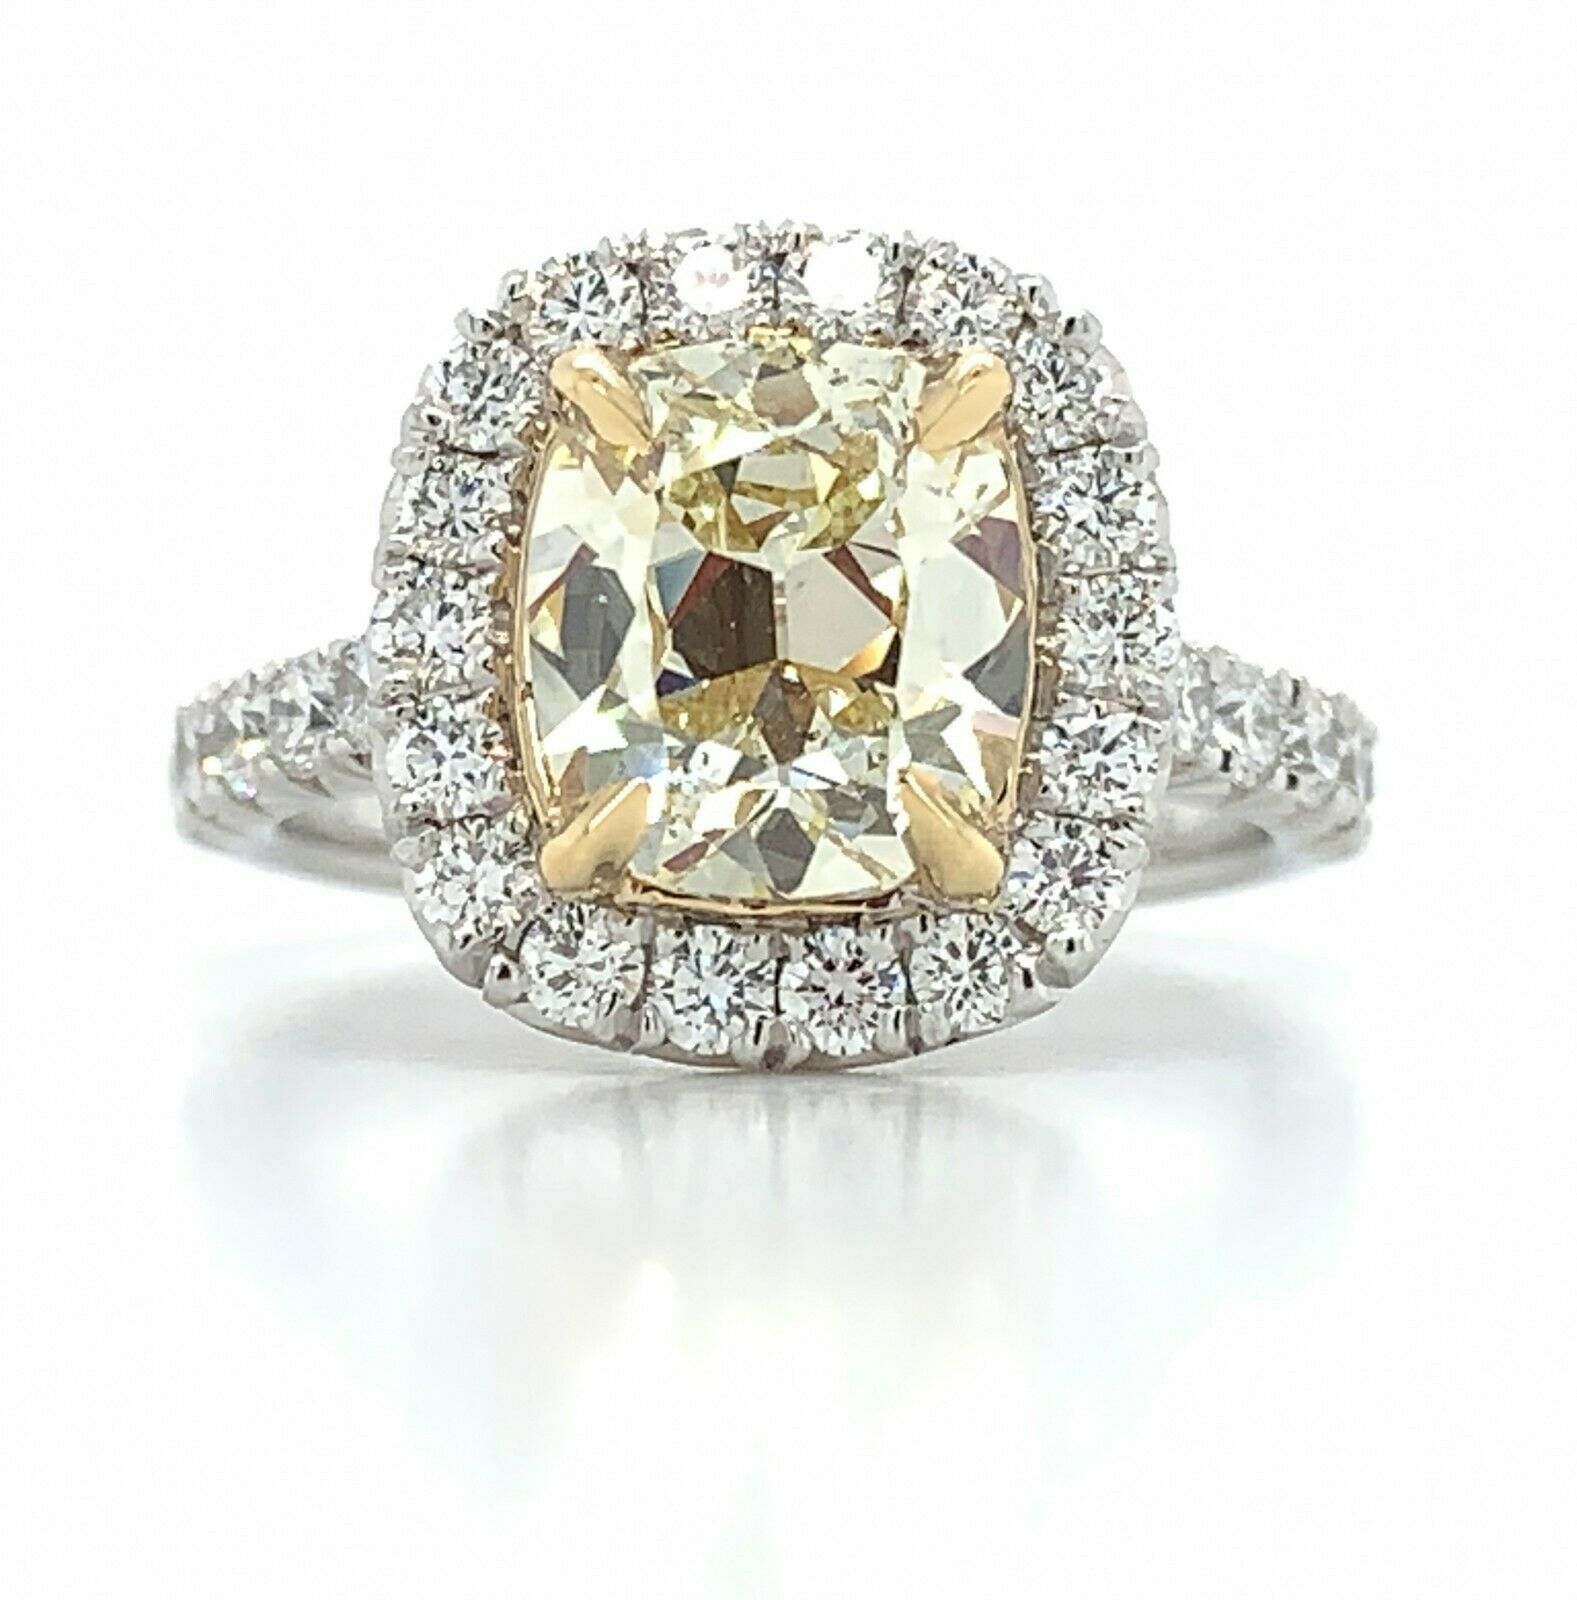 HENRI DAUSSI FANCY YELLOW CUSHION 2.85ct t.w. ENGAGEMENT RING GIA $13.335+TAX